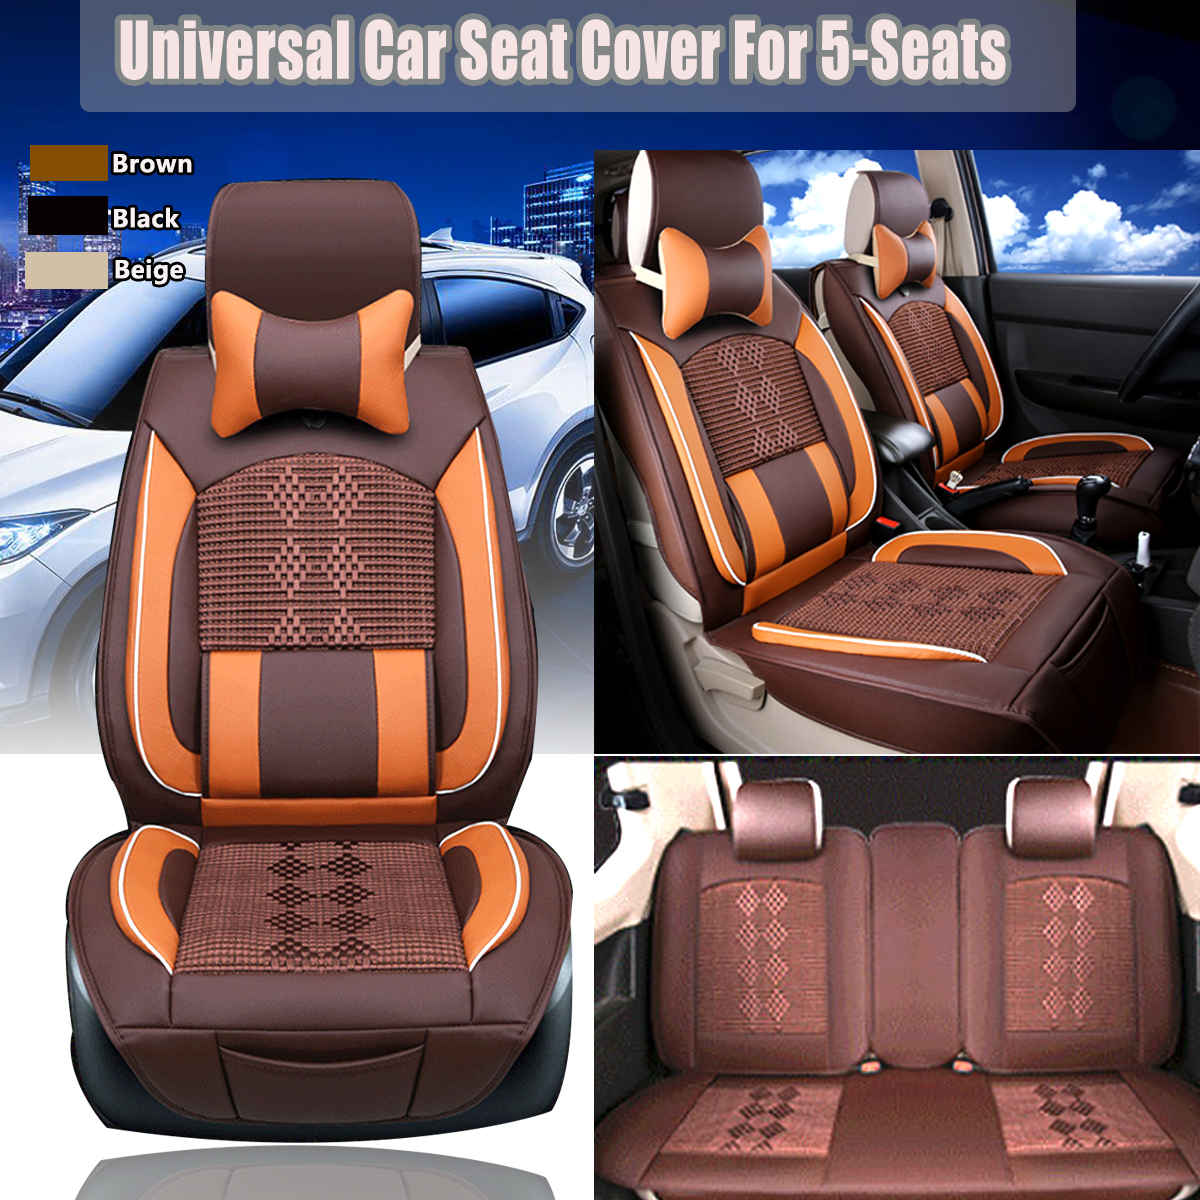 5-Seat Car Seat Car Seat Cover PU Leather+Mesh Seat Cover Front +Rear Cushion+ Pillows